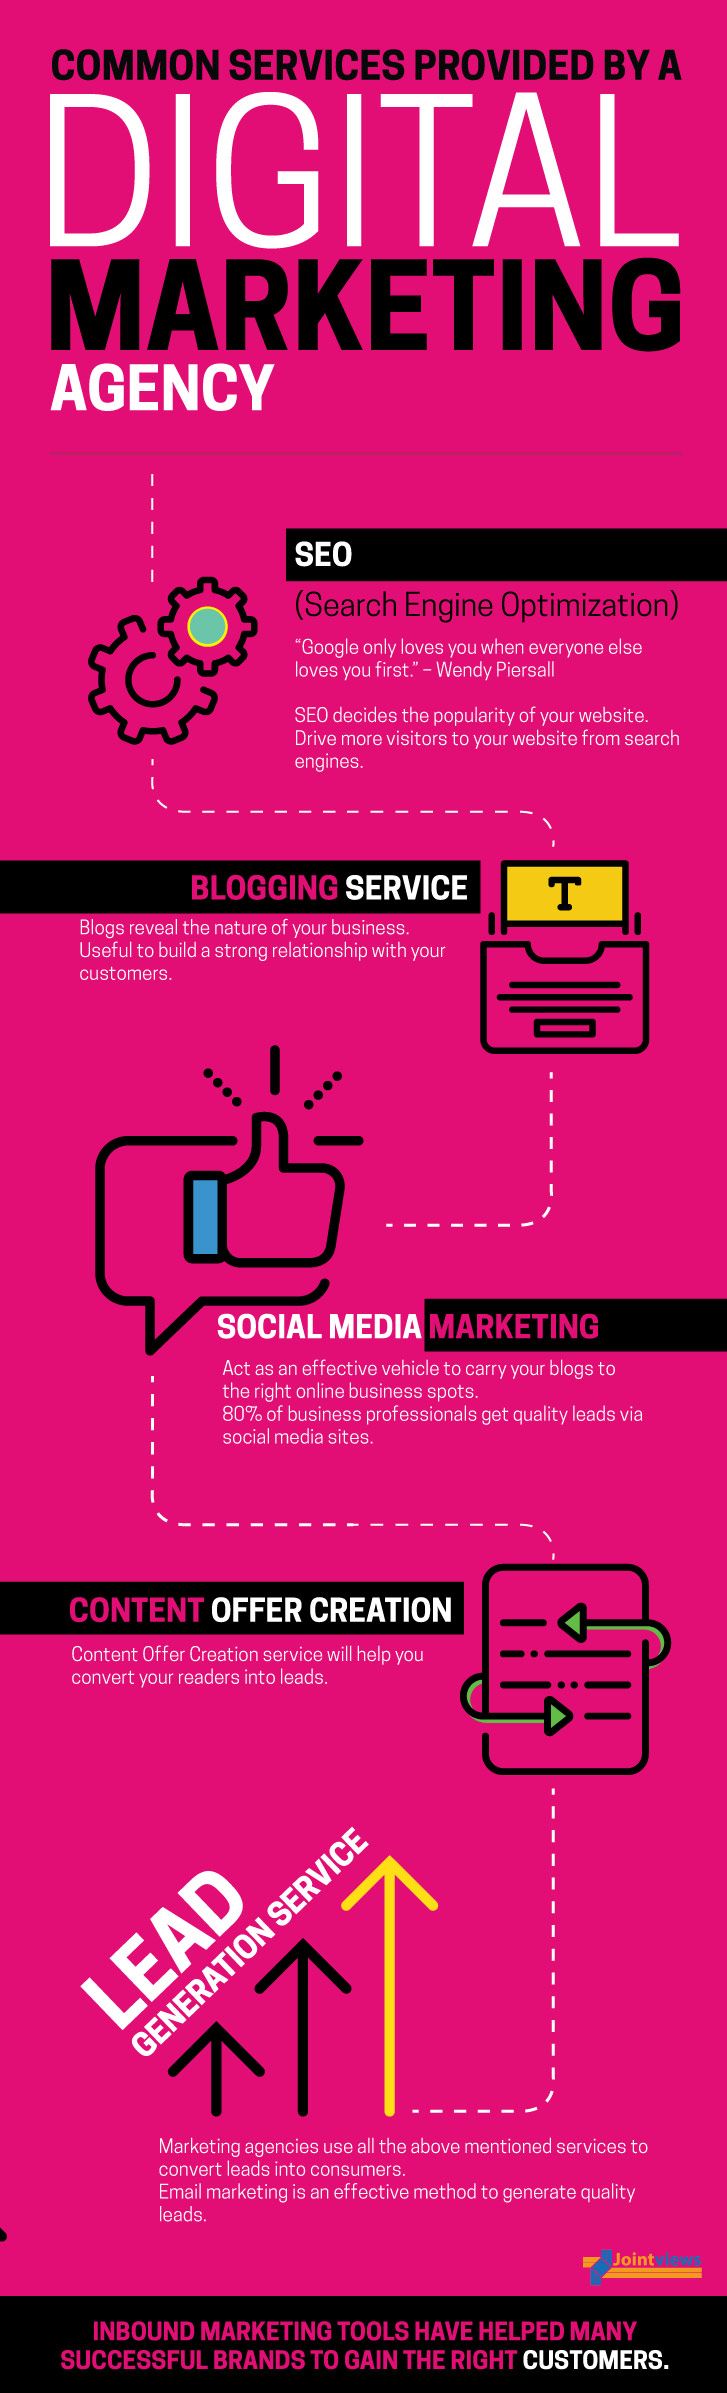 common-services-provided-by-a-digital-marketing-agency-Infographic